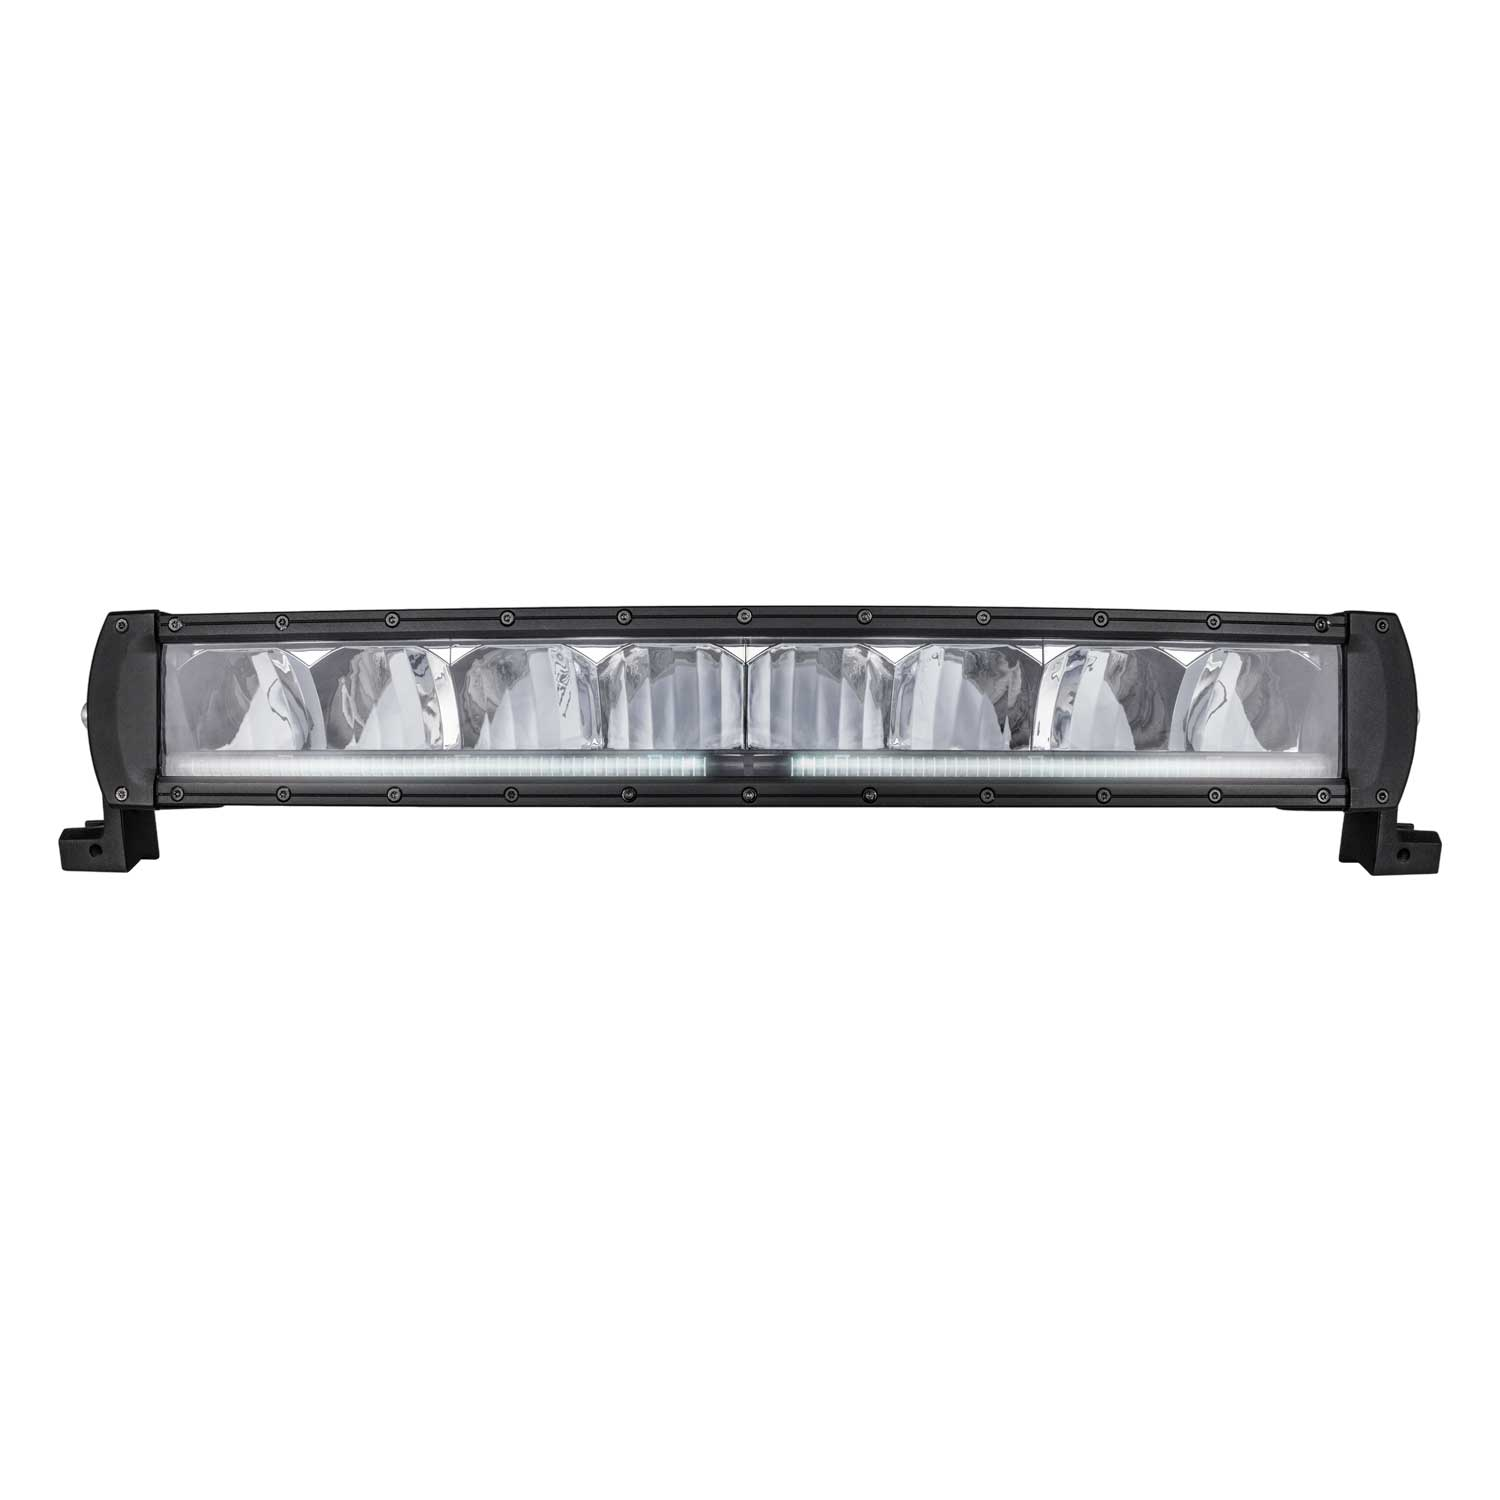 Strands LED-ramp 120W Curved